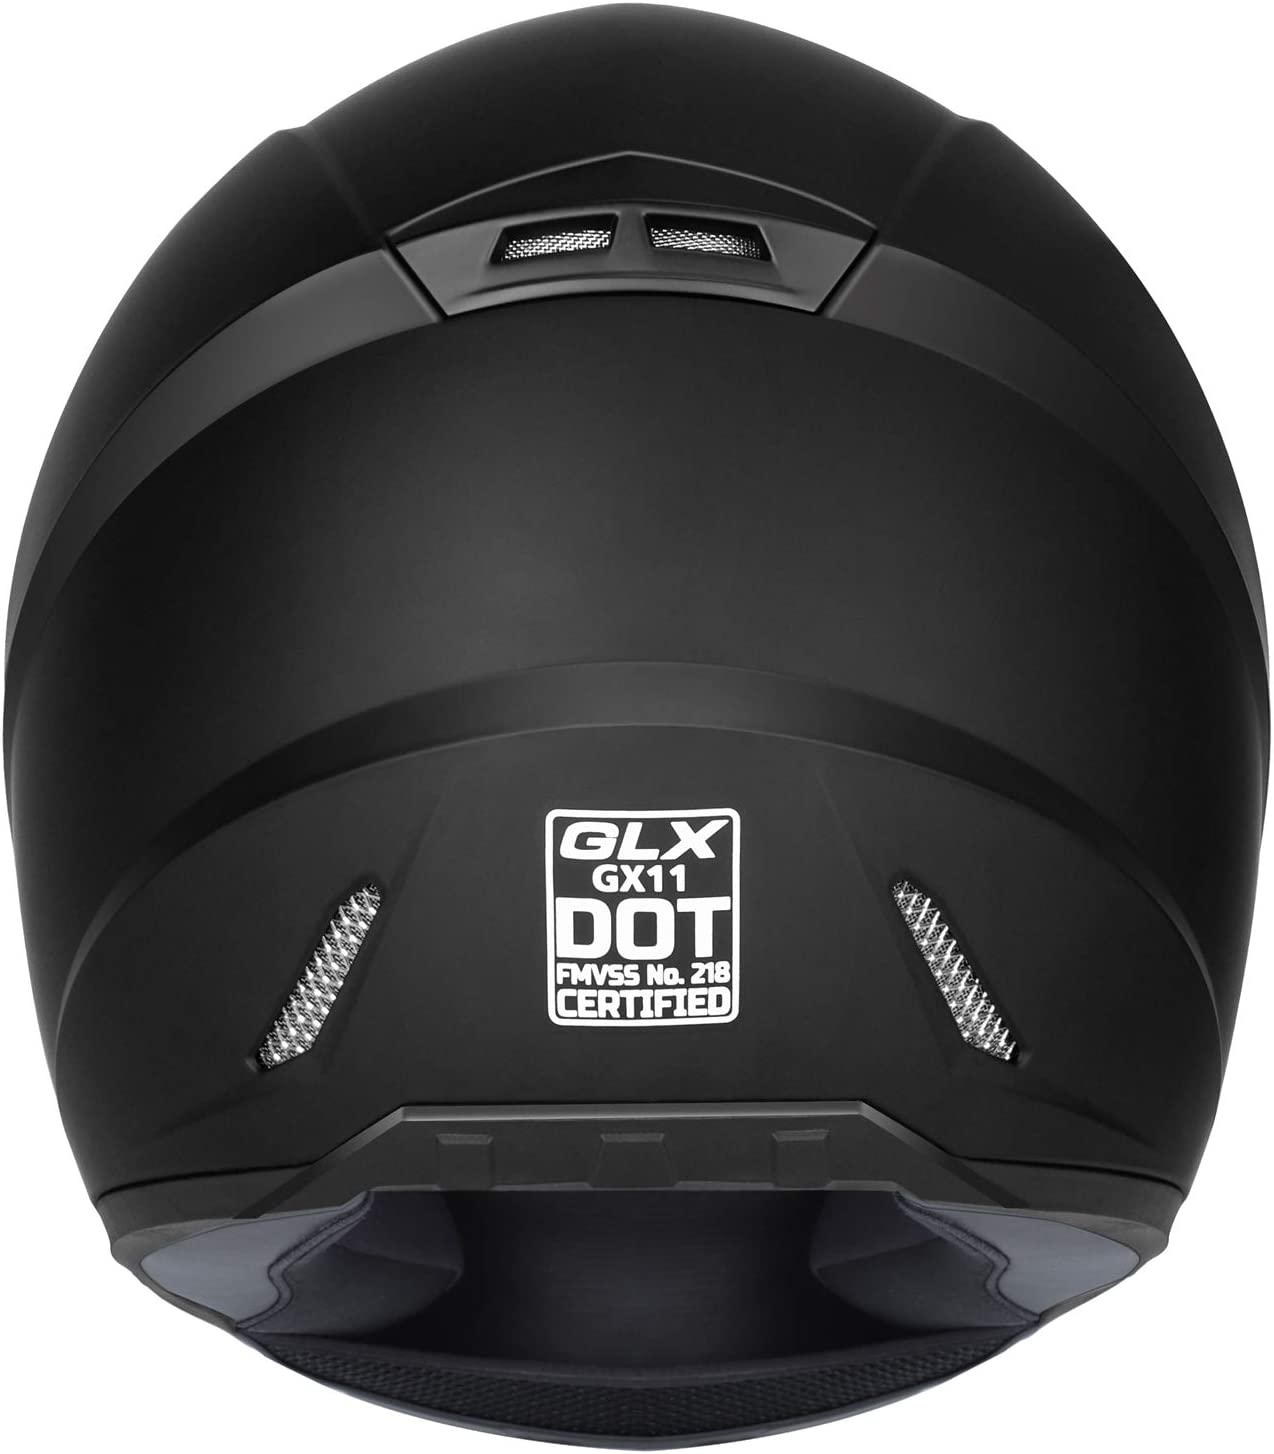 GLX Unisex-Adult GX11 Compact Lightweight Full Face Motorcycle Street Bike Helmet with Extra Tinted Visor DOT Approved Matte Black, Large